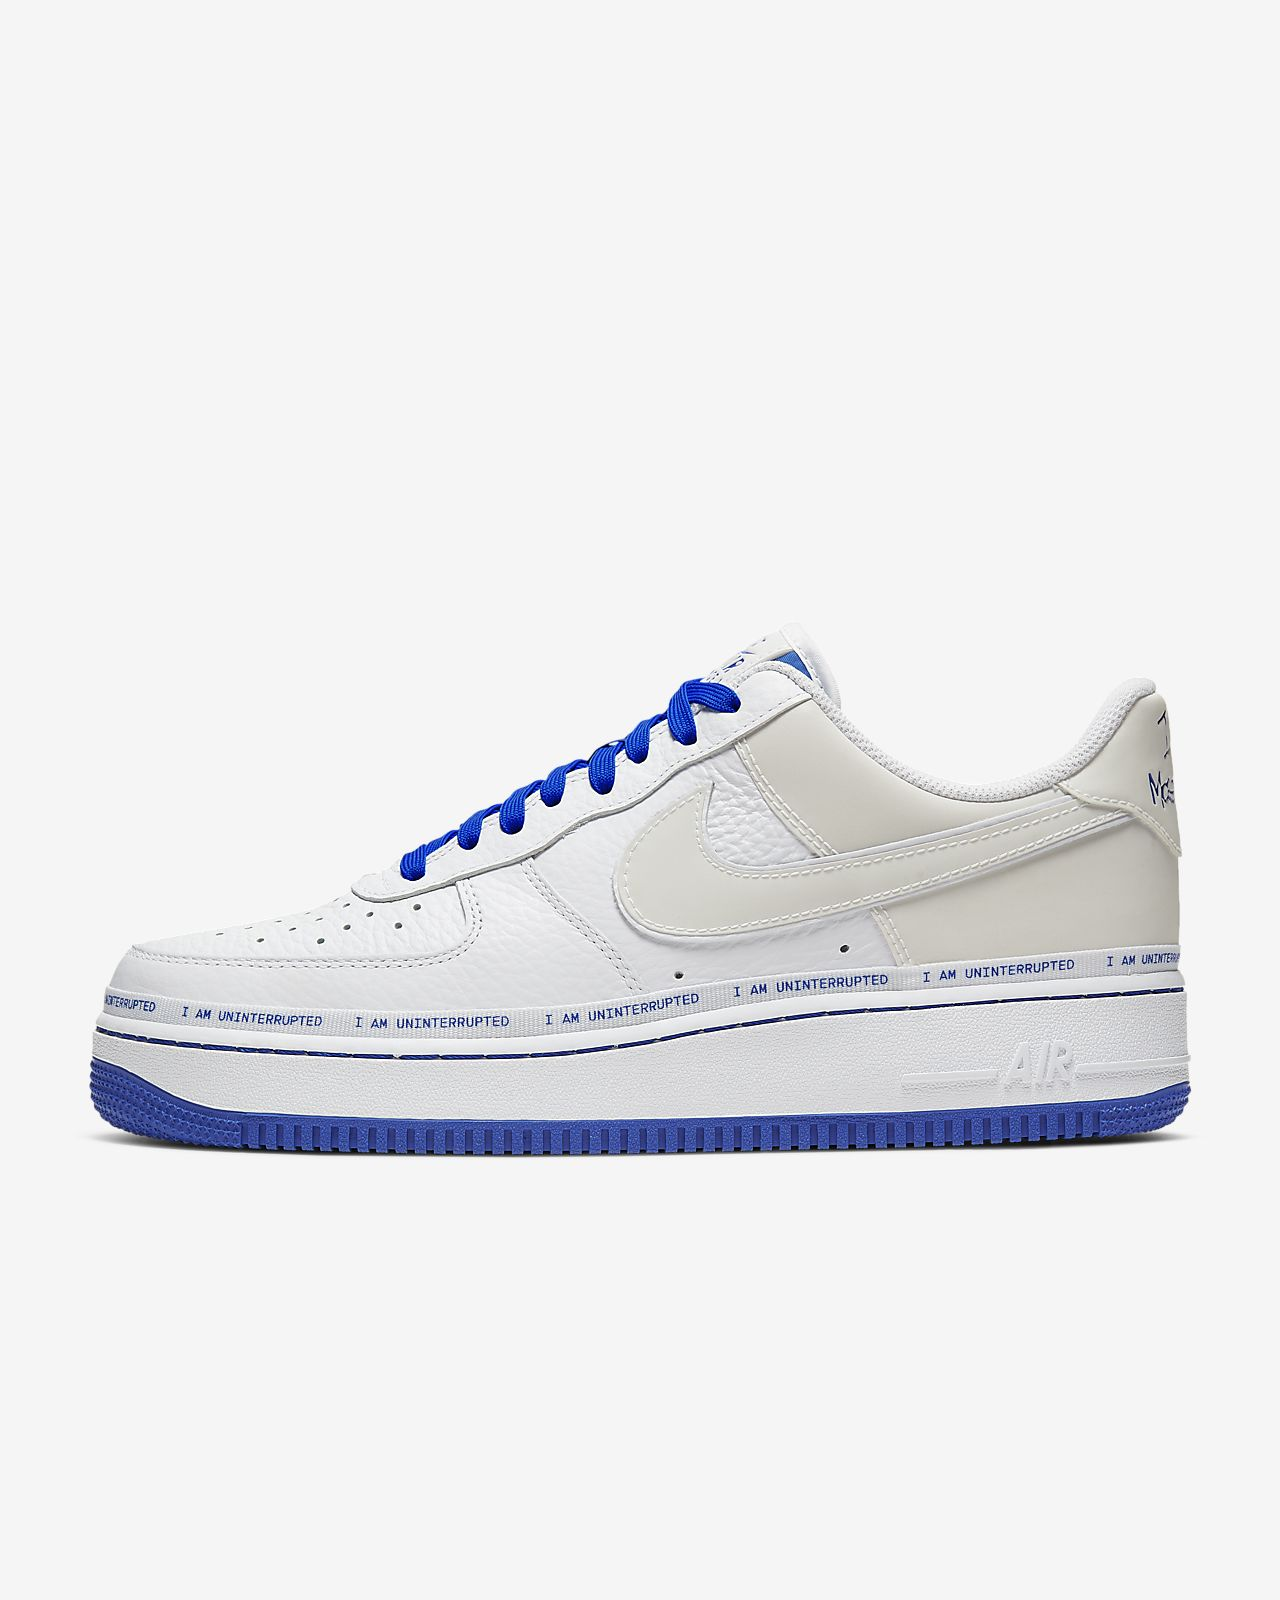 Nike Air Force 1 '07 More Than ____ Herrenschuh